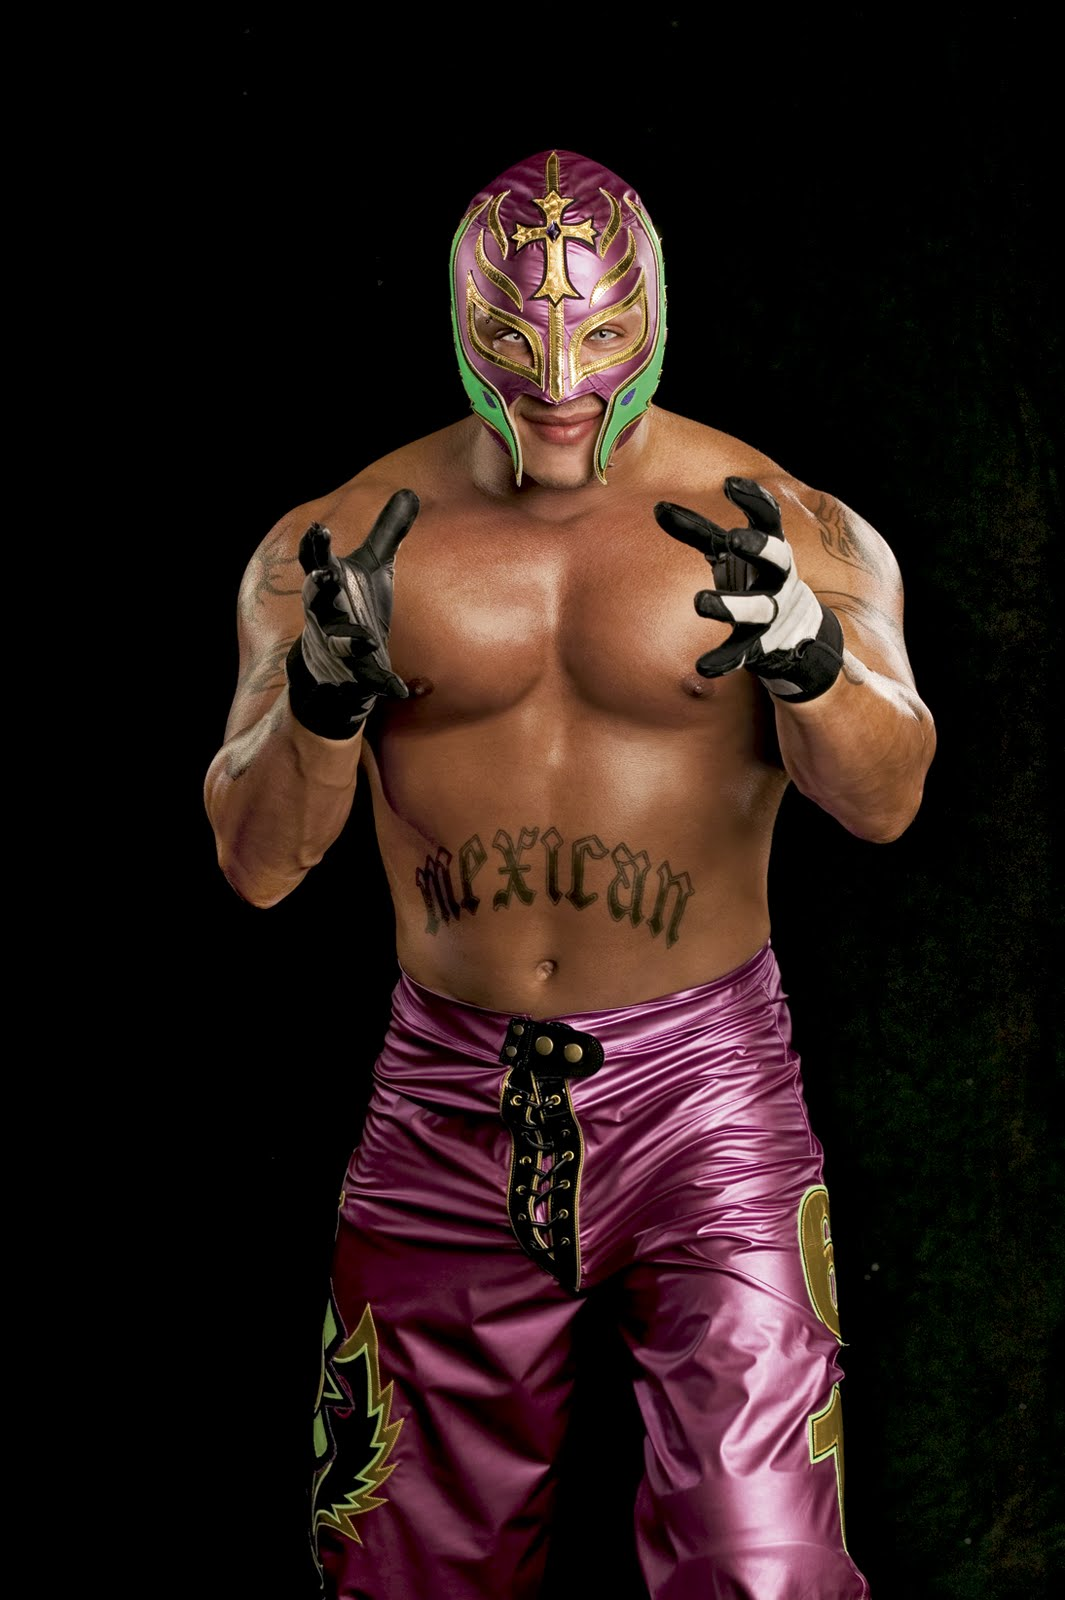 Lucha Libre Rey Misterio Sports Stars Info Rey Mysterio Wrestling Player